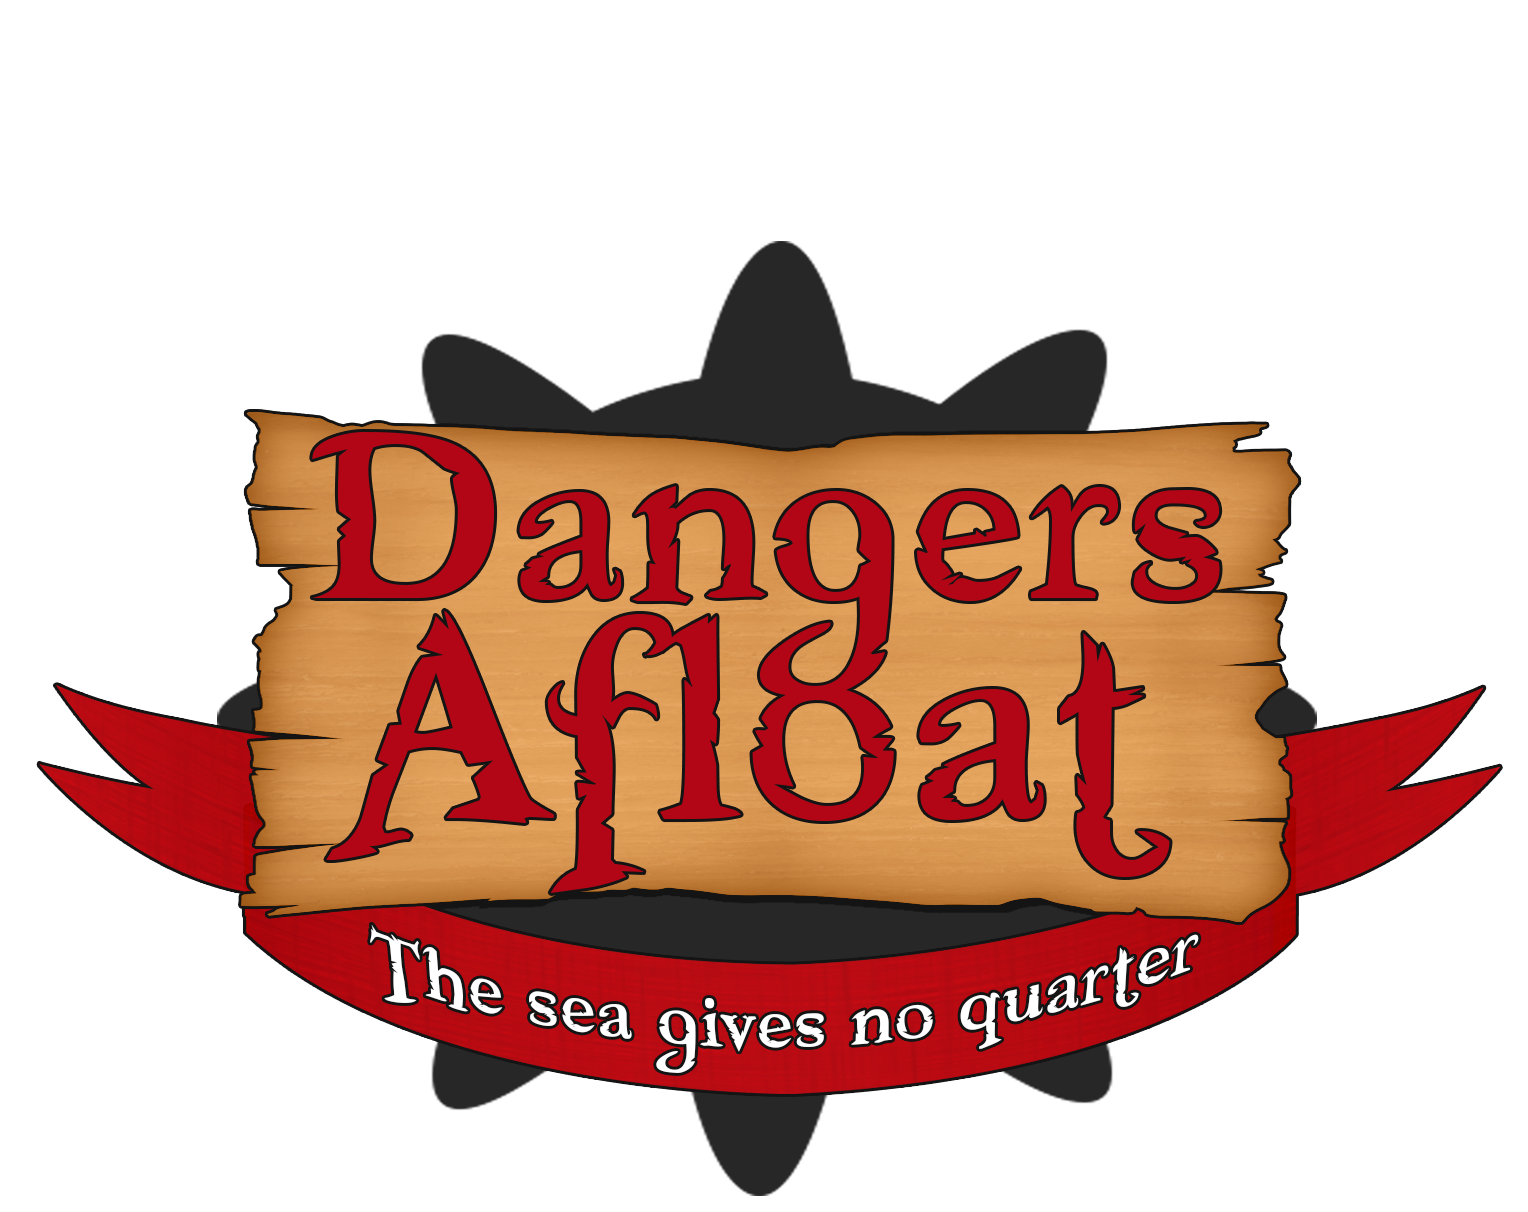 Dangers Afloat